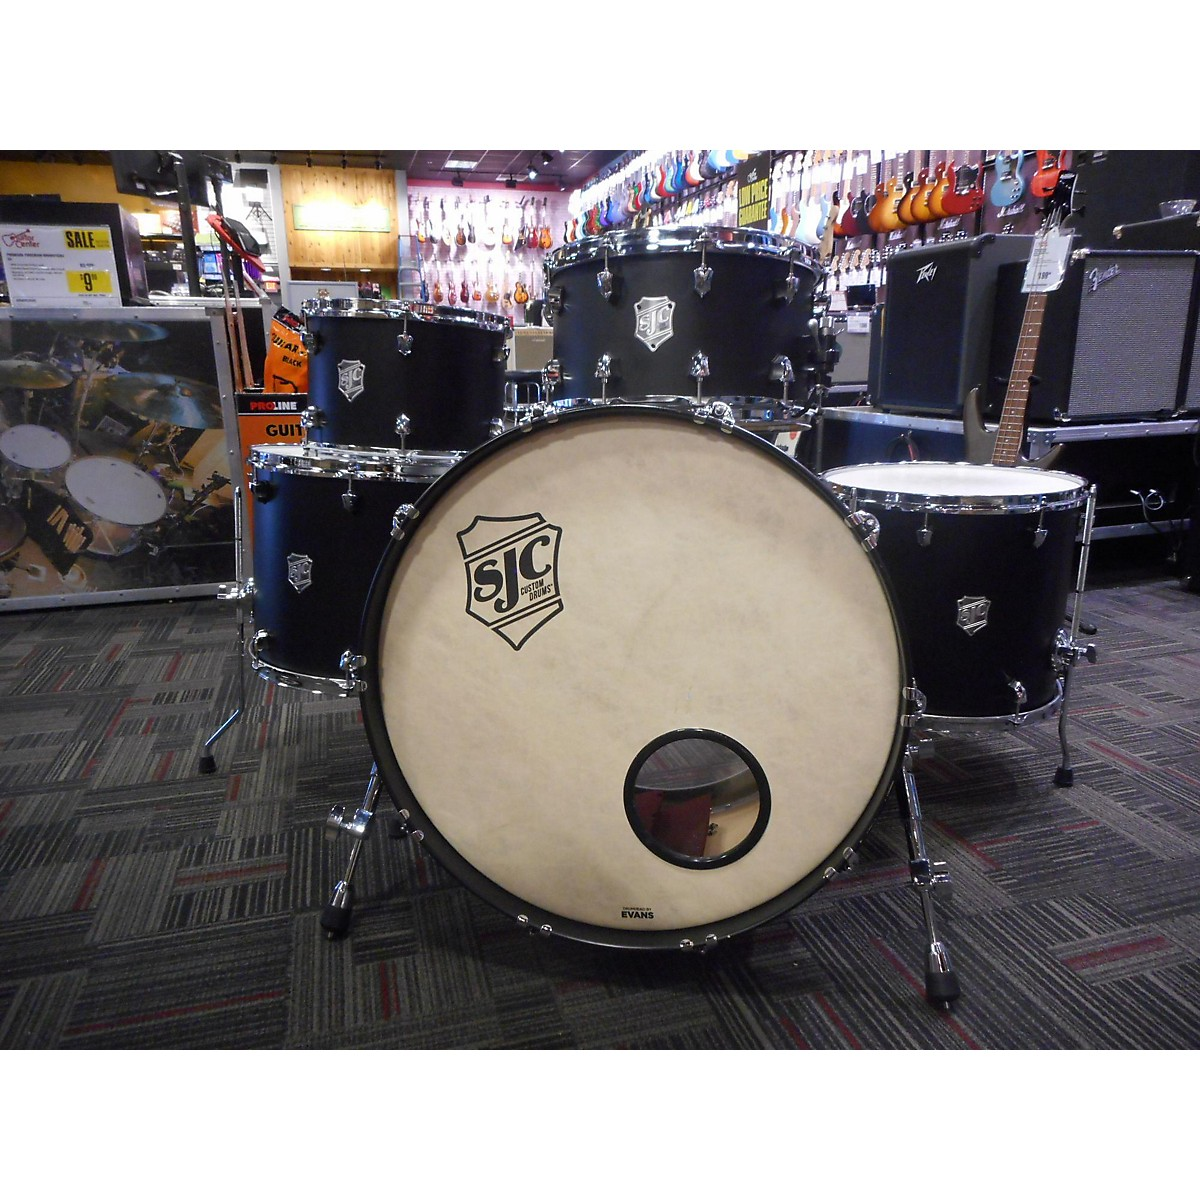 SJC Drums 2016 SJC Custom Drum Kit